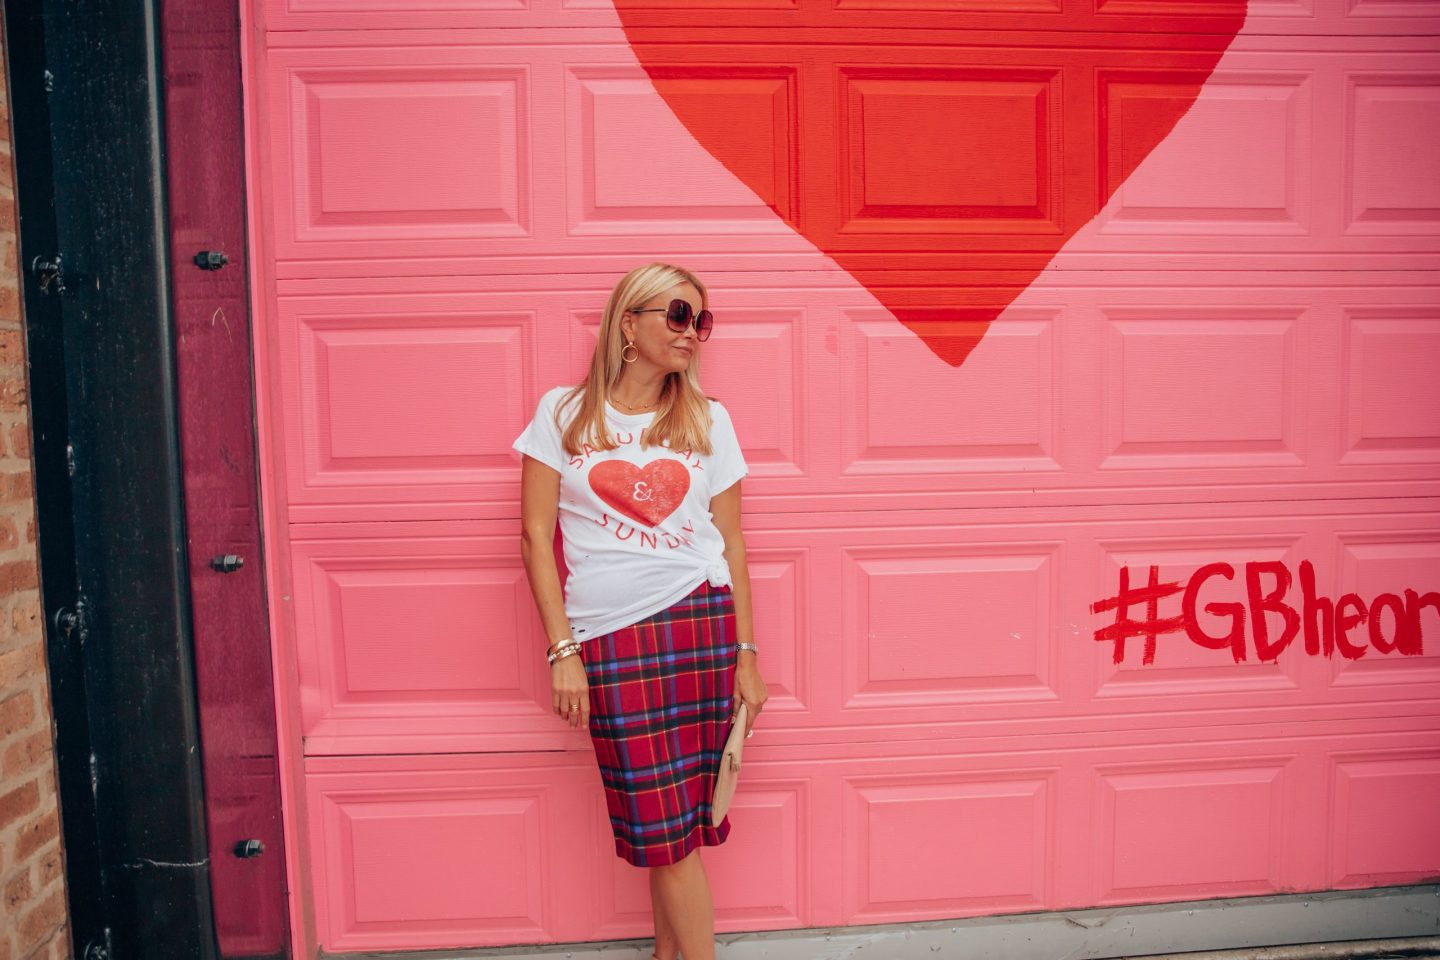 Holiday Plaid Picks-Plaid pencil skirt with Chaser brand Graphic t-shirt  as seen on style & travel blogger Gloss and Harbour